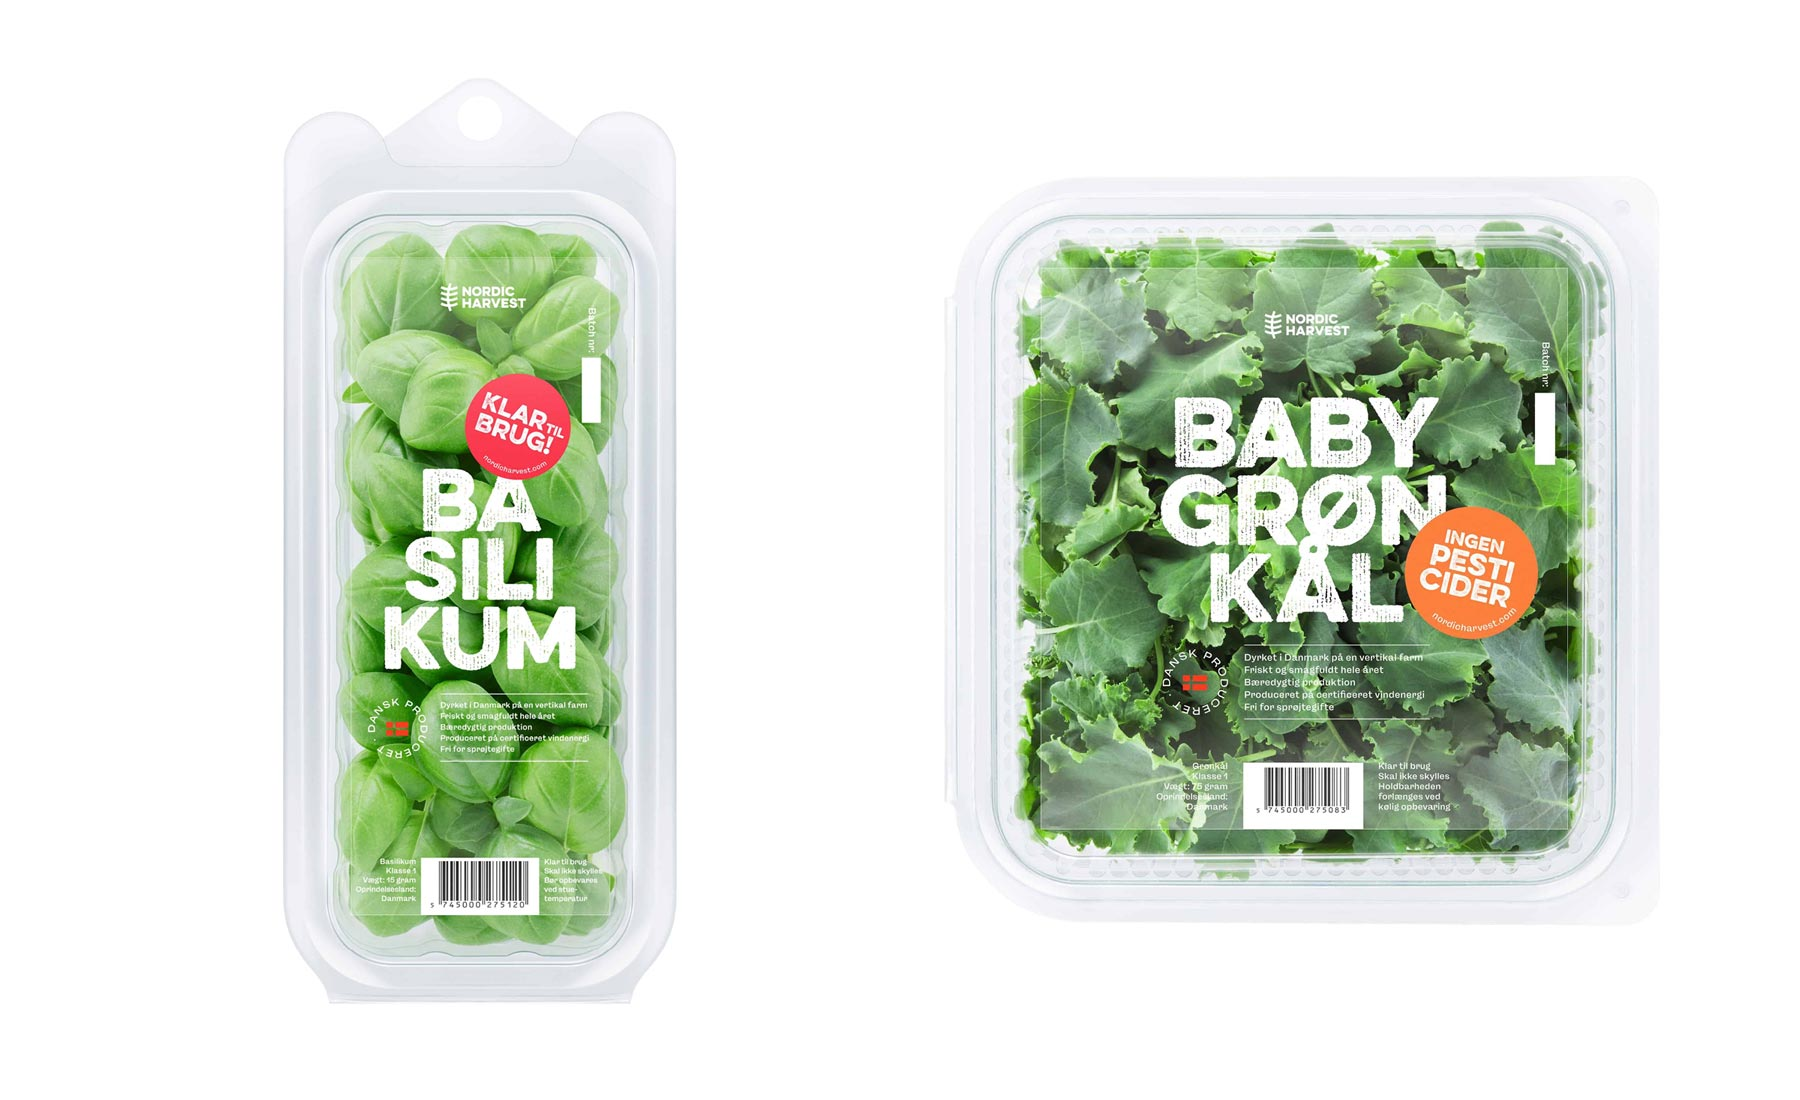 Shows the design of the new Nordic Harvest packaging